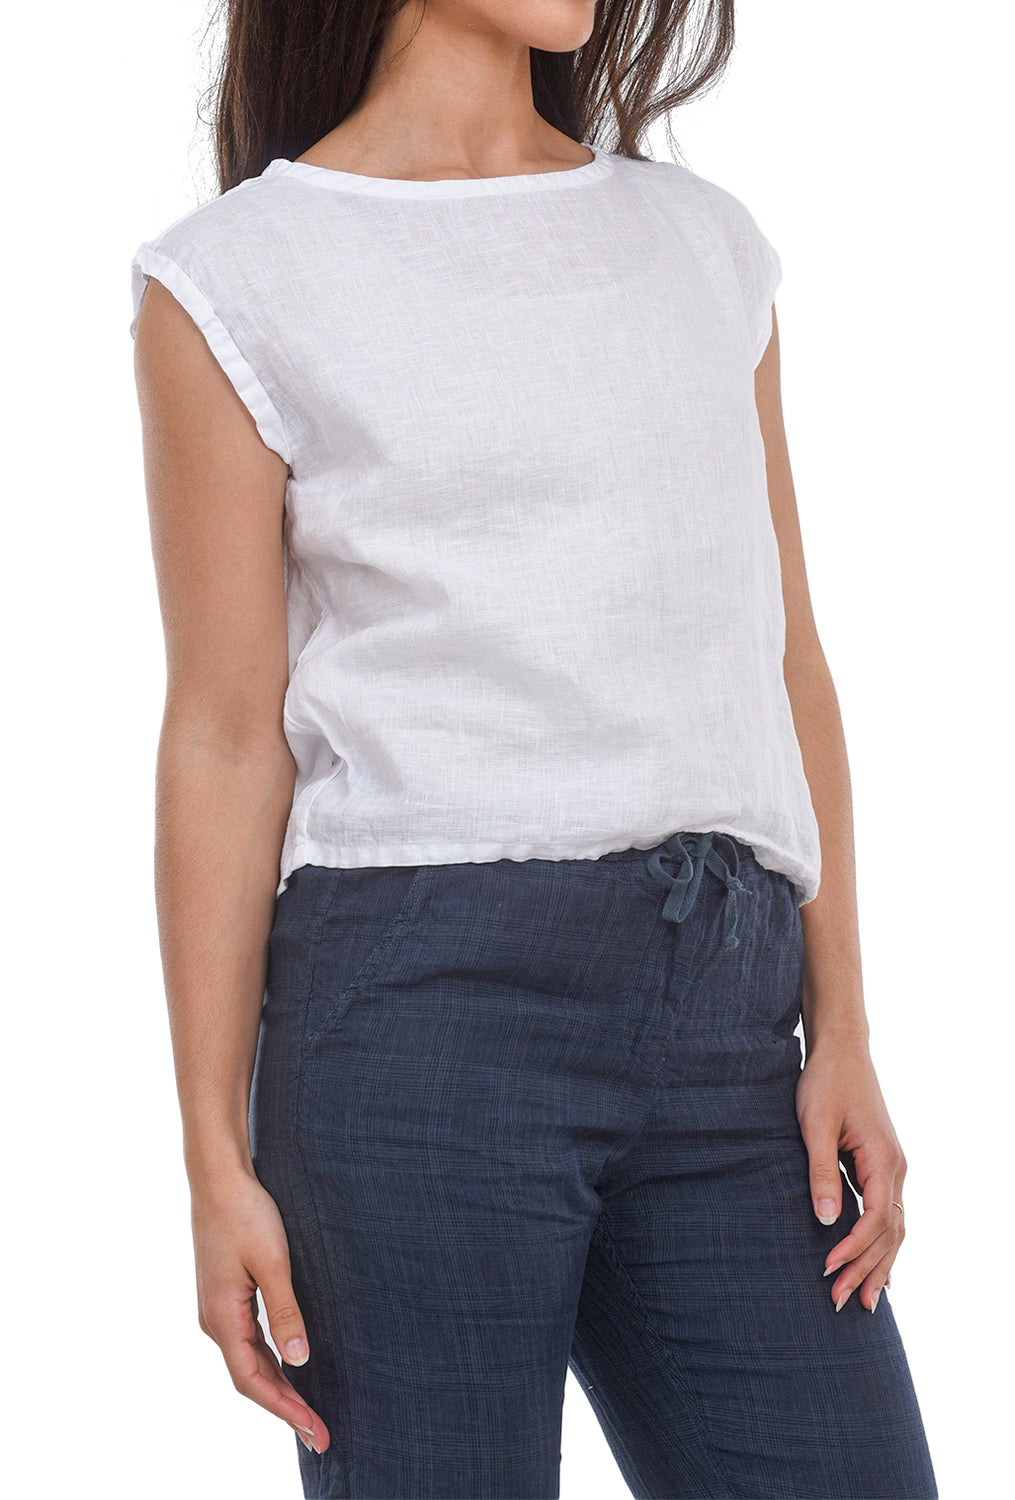 CP Shades Rowan Linen Top, White